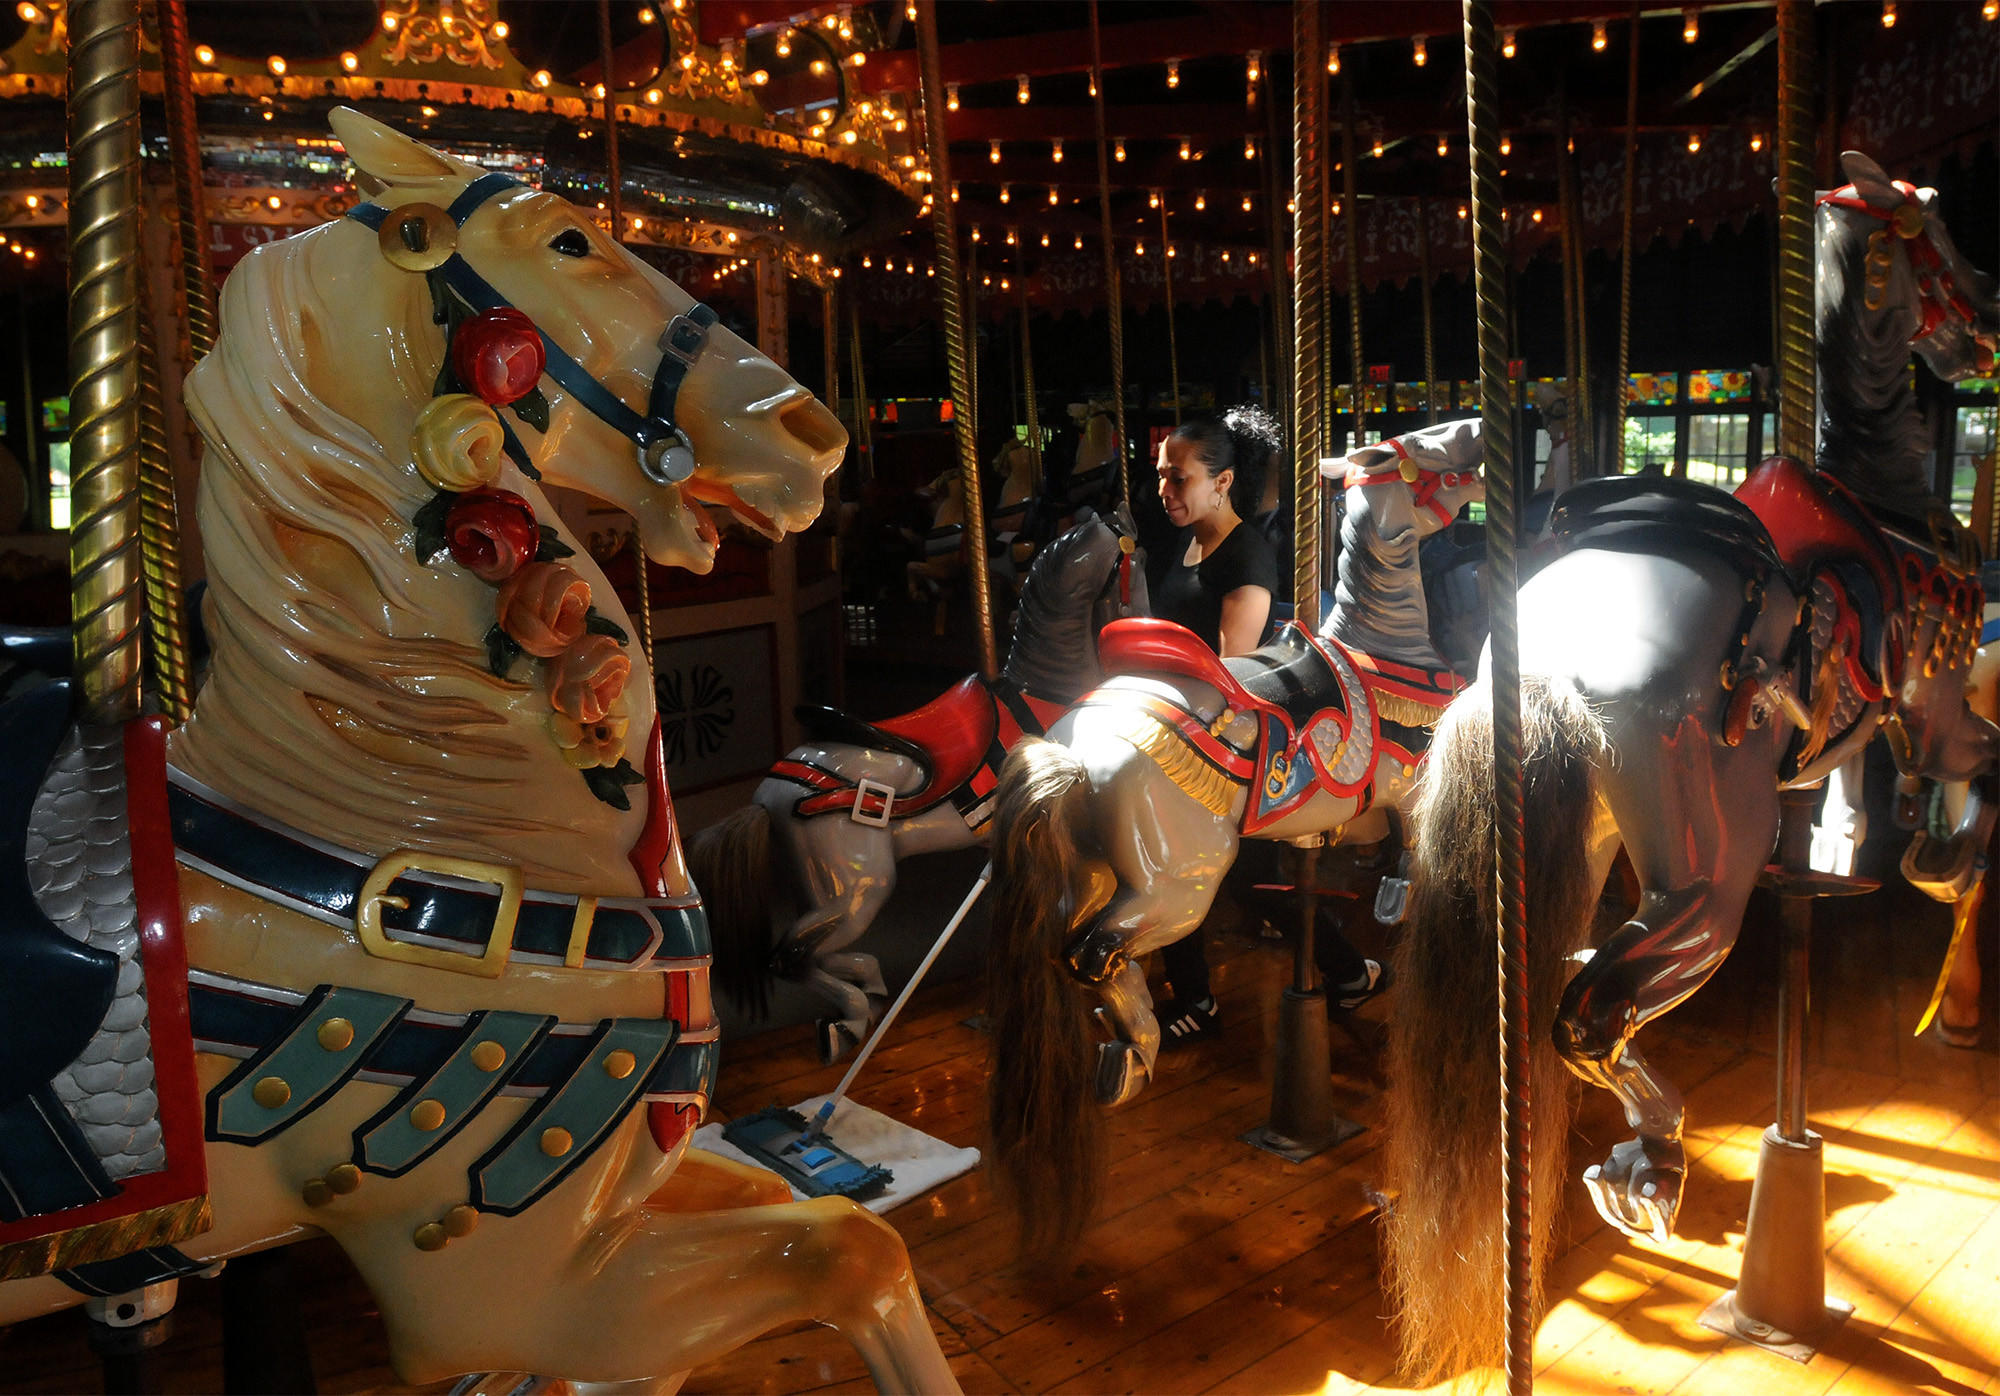 Bushnell Park Carousel employee Brenda Mendez, of Hartford, sweeps the carousel platform as part of finishing touches for tomorrow's opening day. The carousel, built in 1914, is one of three Stein and Goldstein carousels still in operation. It has been in Hartford since 1974.